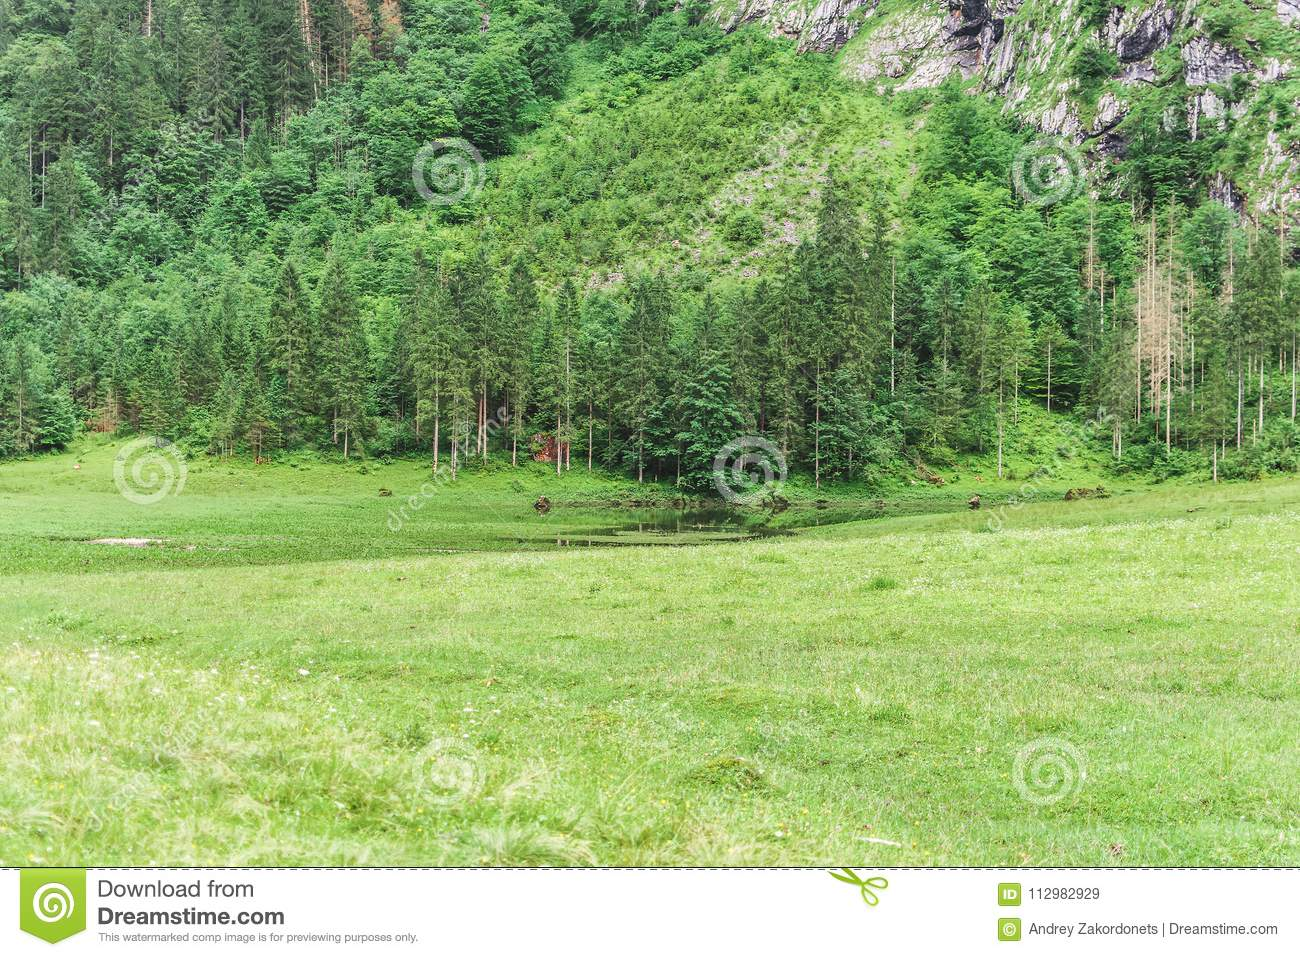 Trees in the mountains, Alps, Germany, Bershtesgaden Obersee.